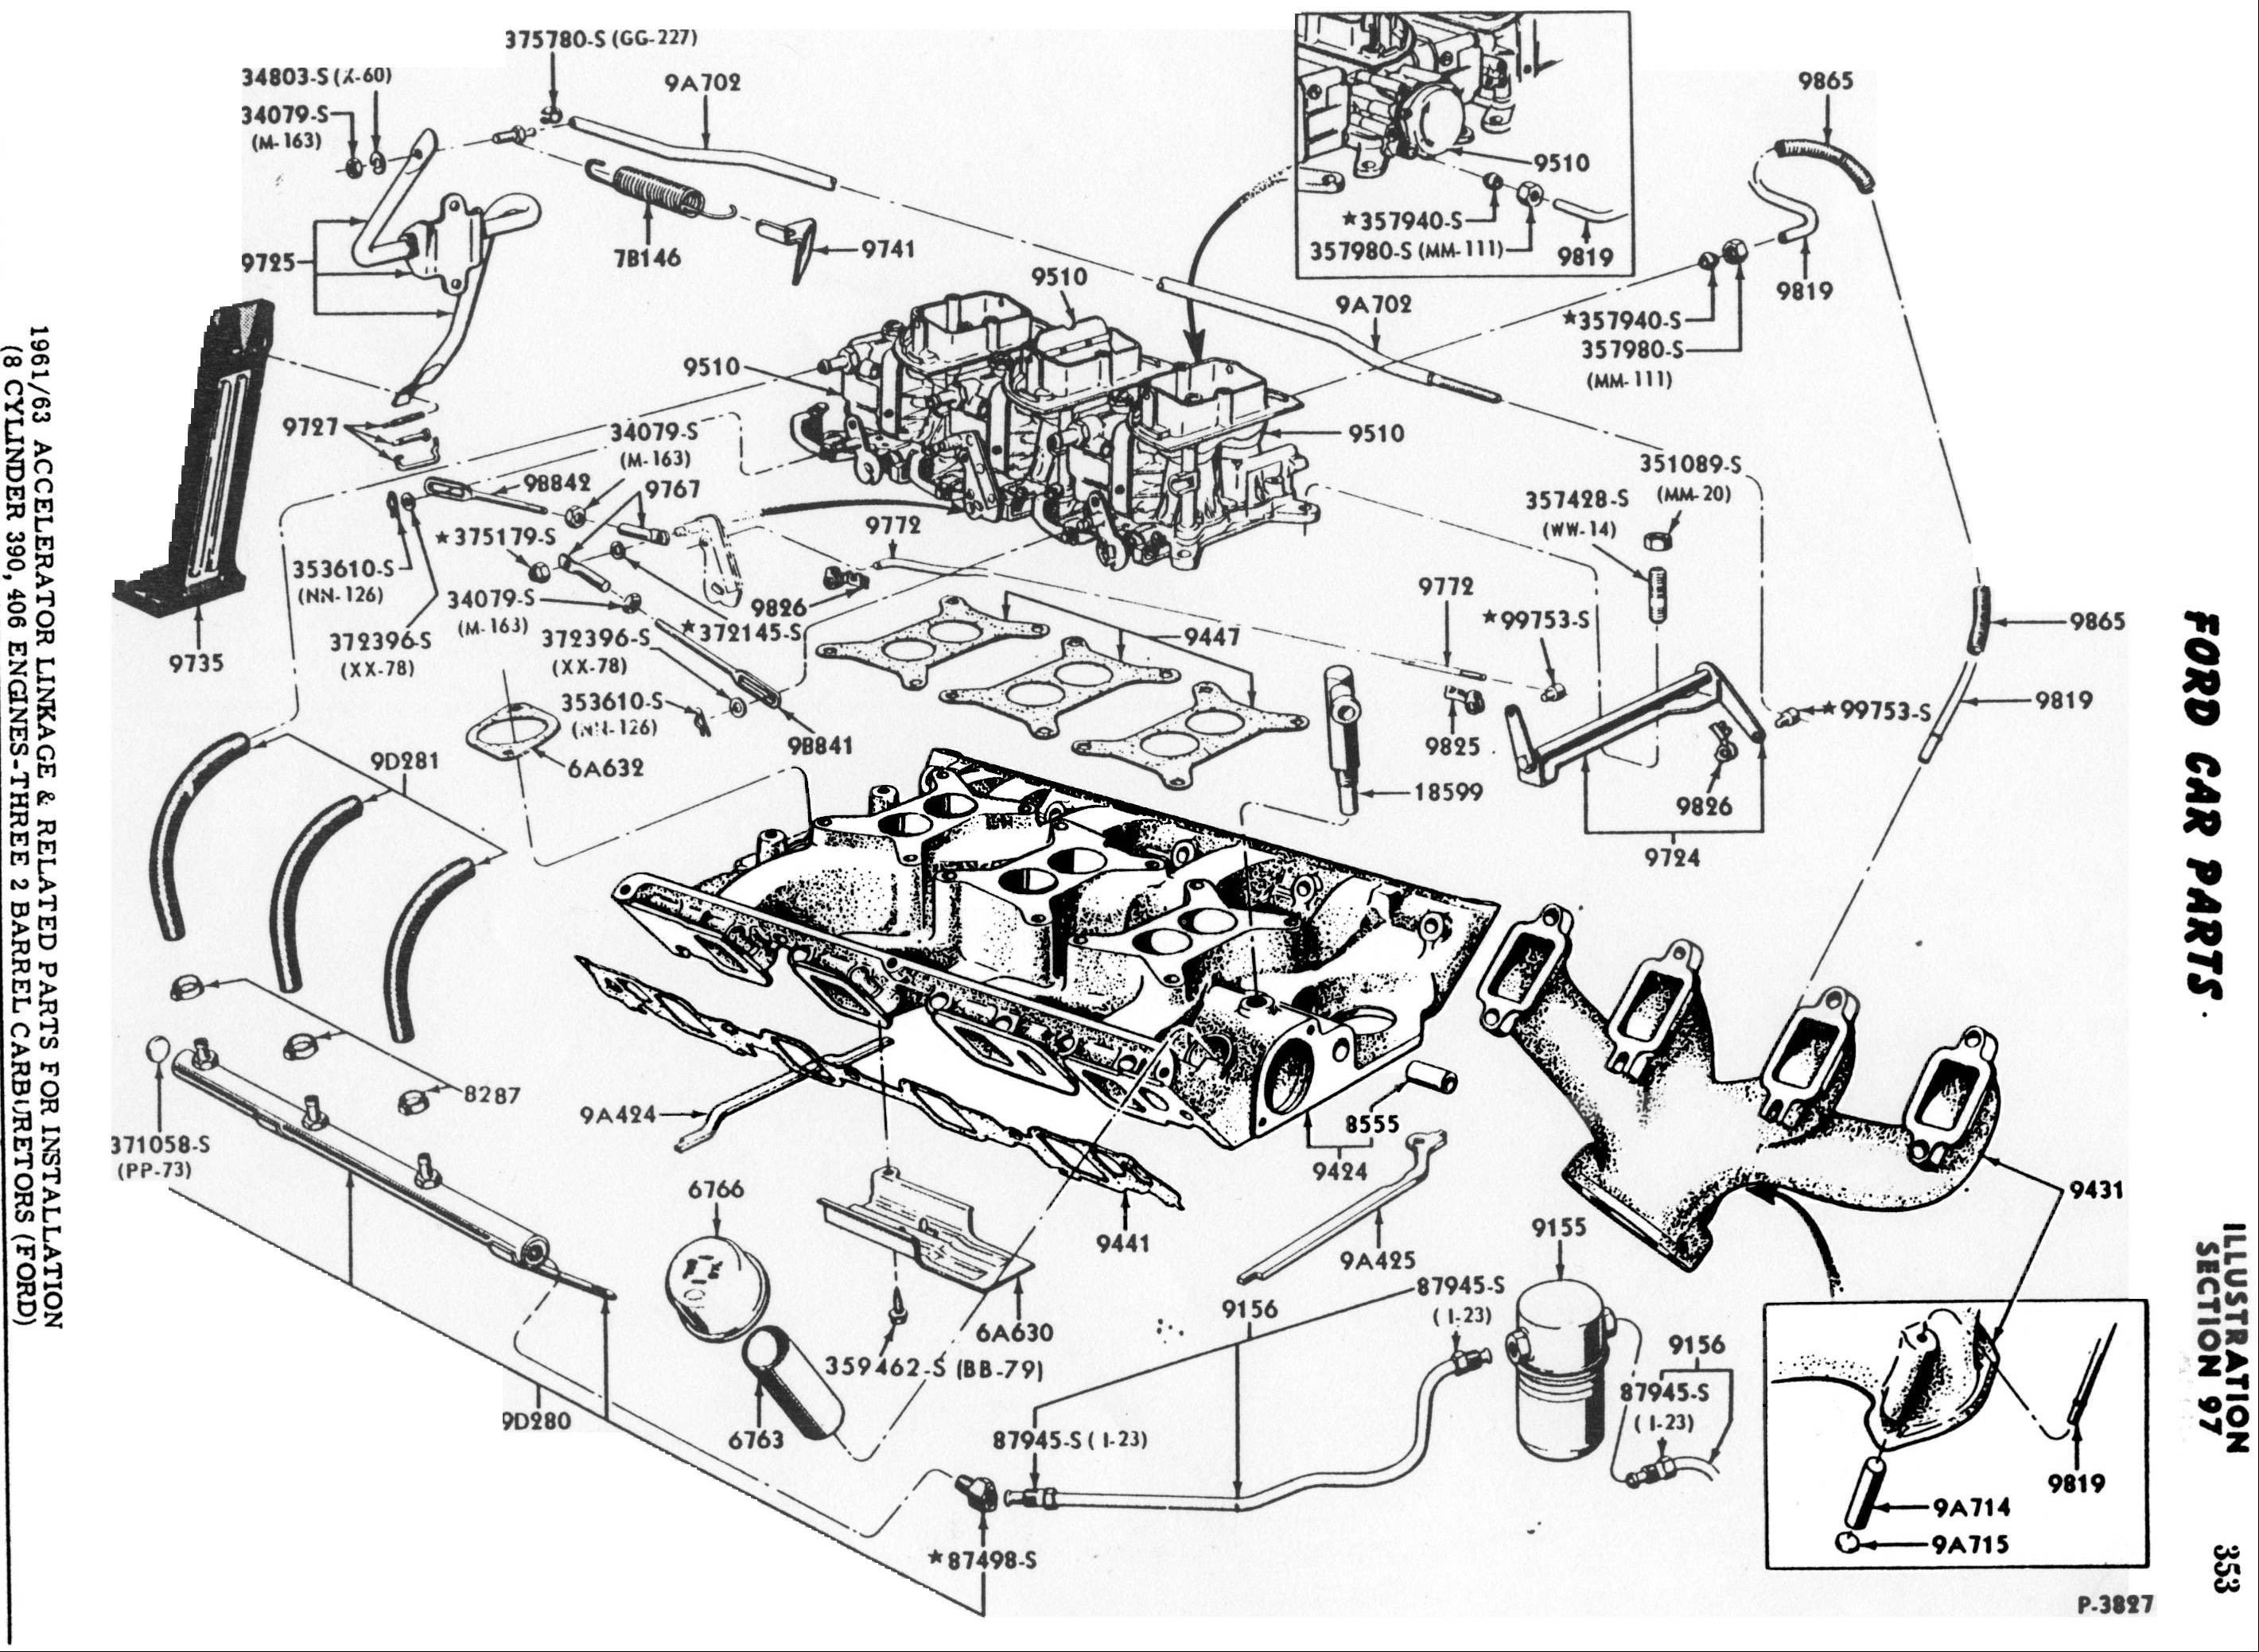 2000 Ford Focus Engine Diagram My Wiring F250 460 Info Of